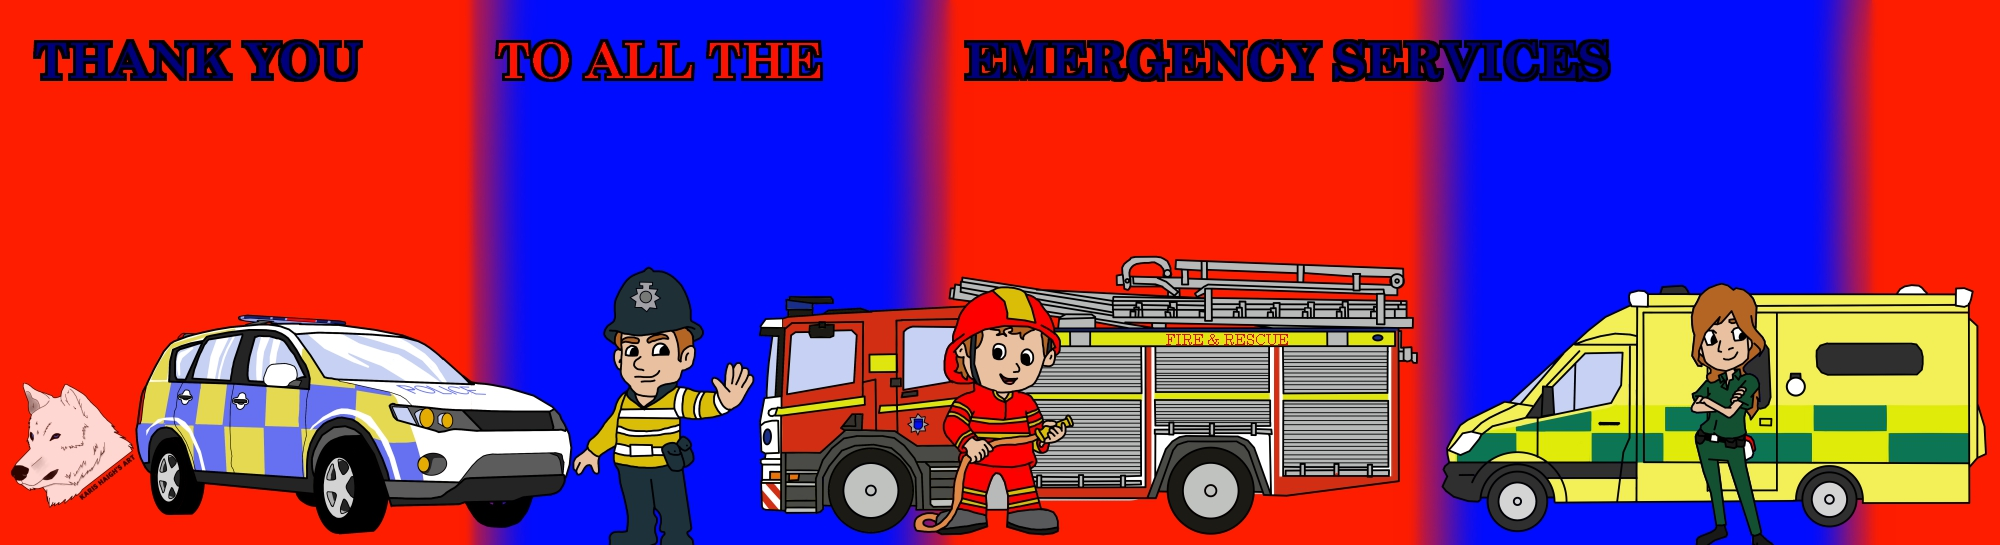 Thank You To All The Emergency Services